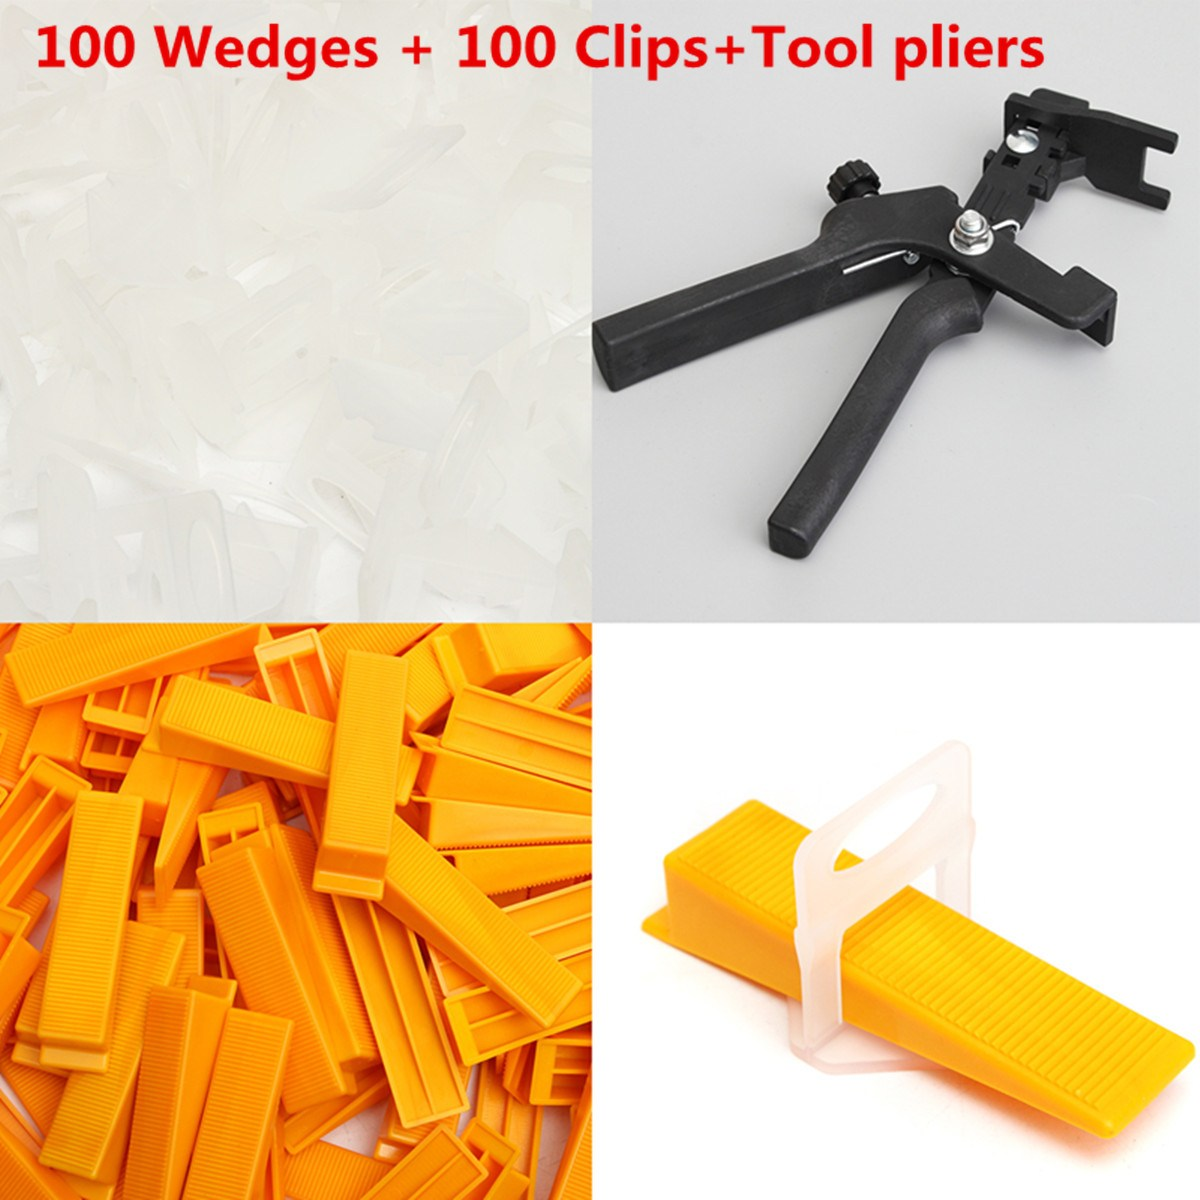 201 Tile Leveling Spacer System Kit Wedges Clips Pliers Tool Tiling Flooring 2mm Yellow White Black<br>